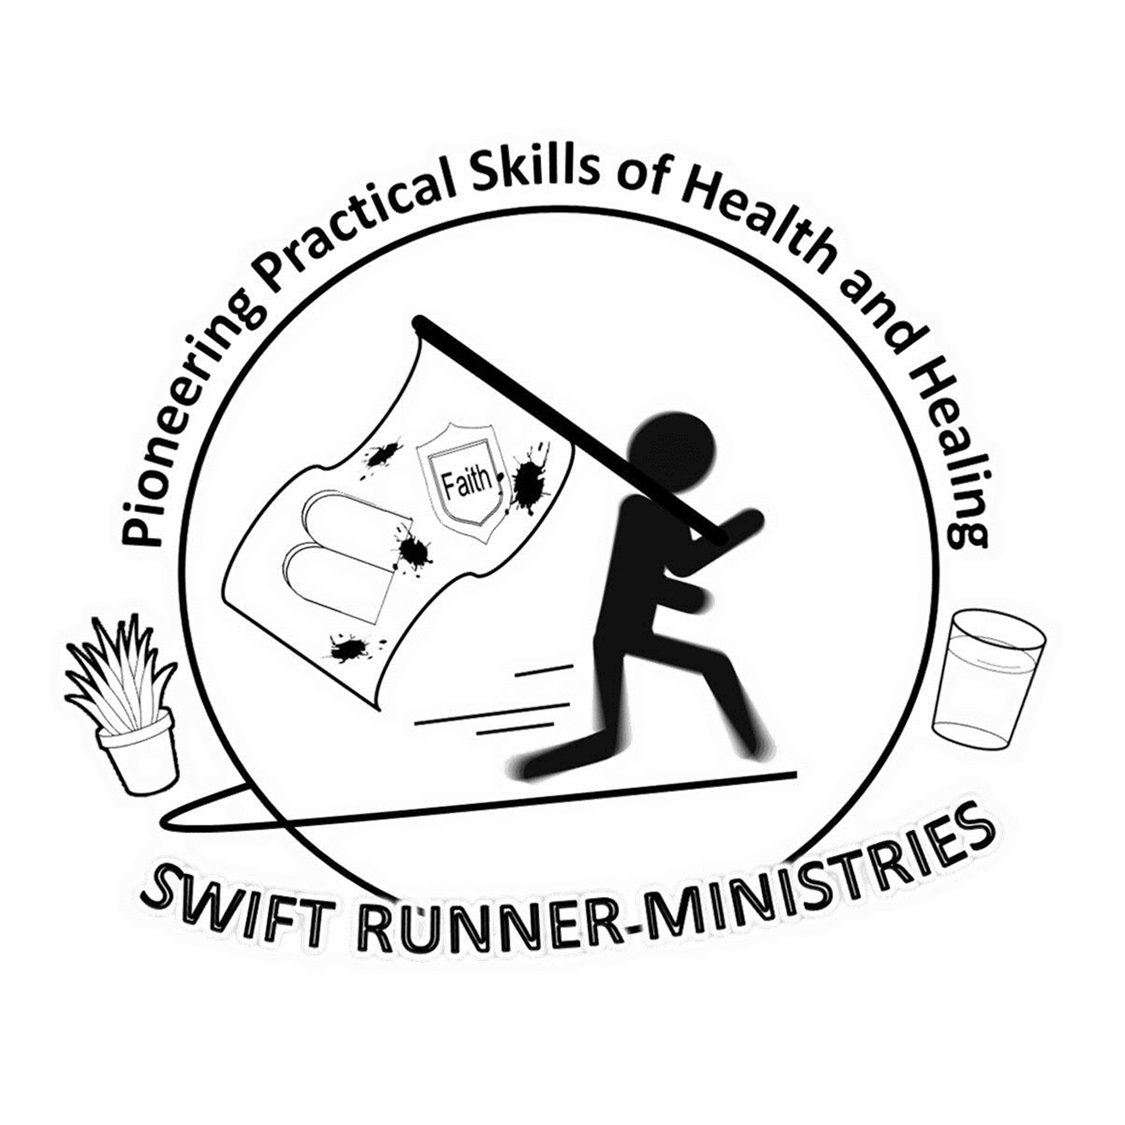 Swift Runner Ministries